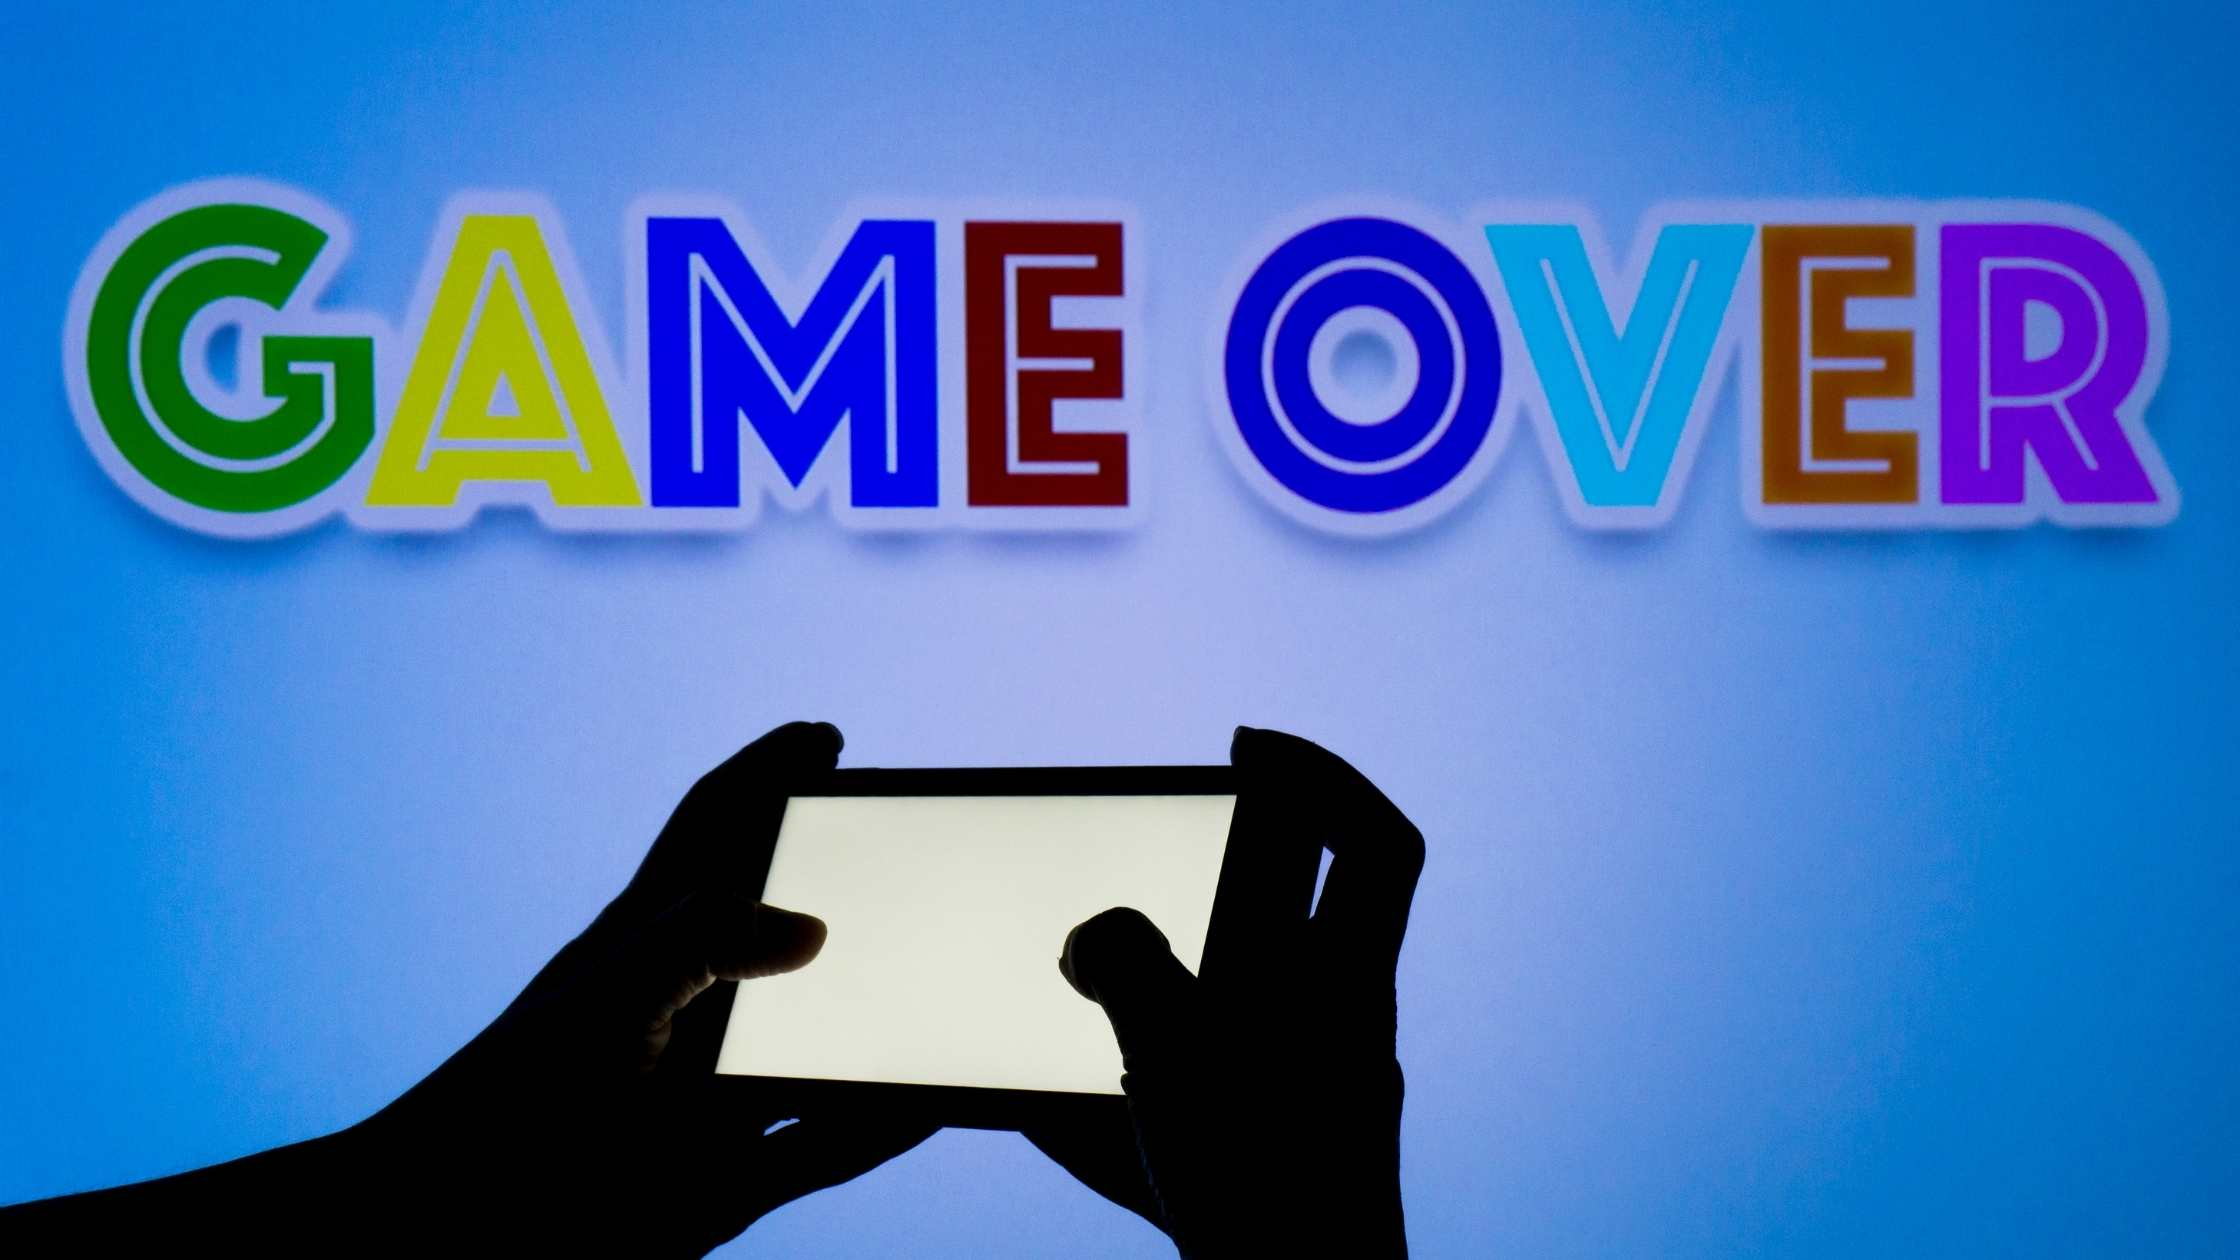 Mobile gaming concept; Close up of hands holding mobile phone; Colourful 'Game Over' text above